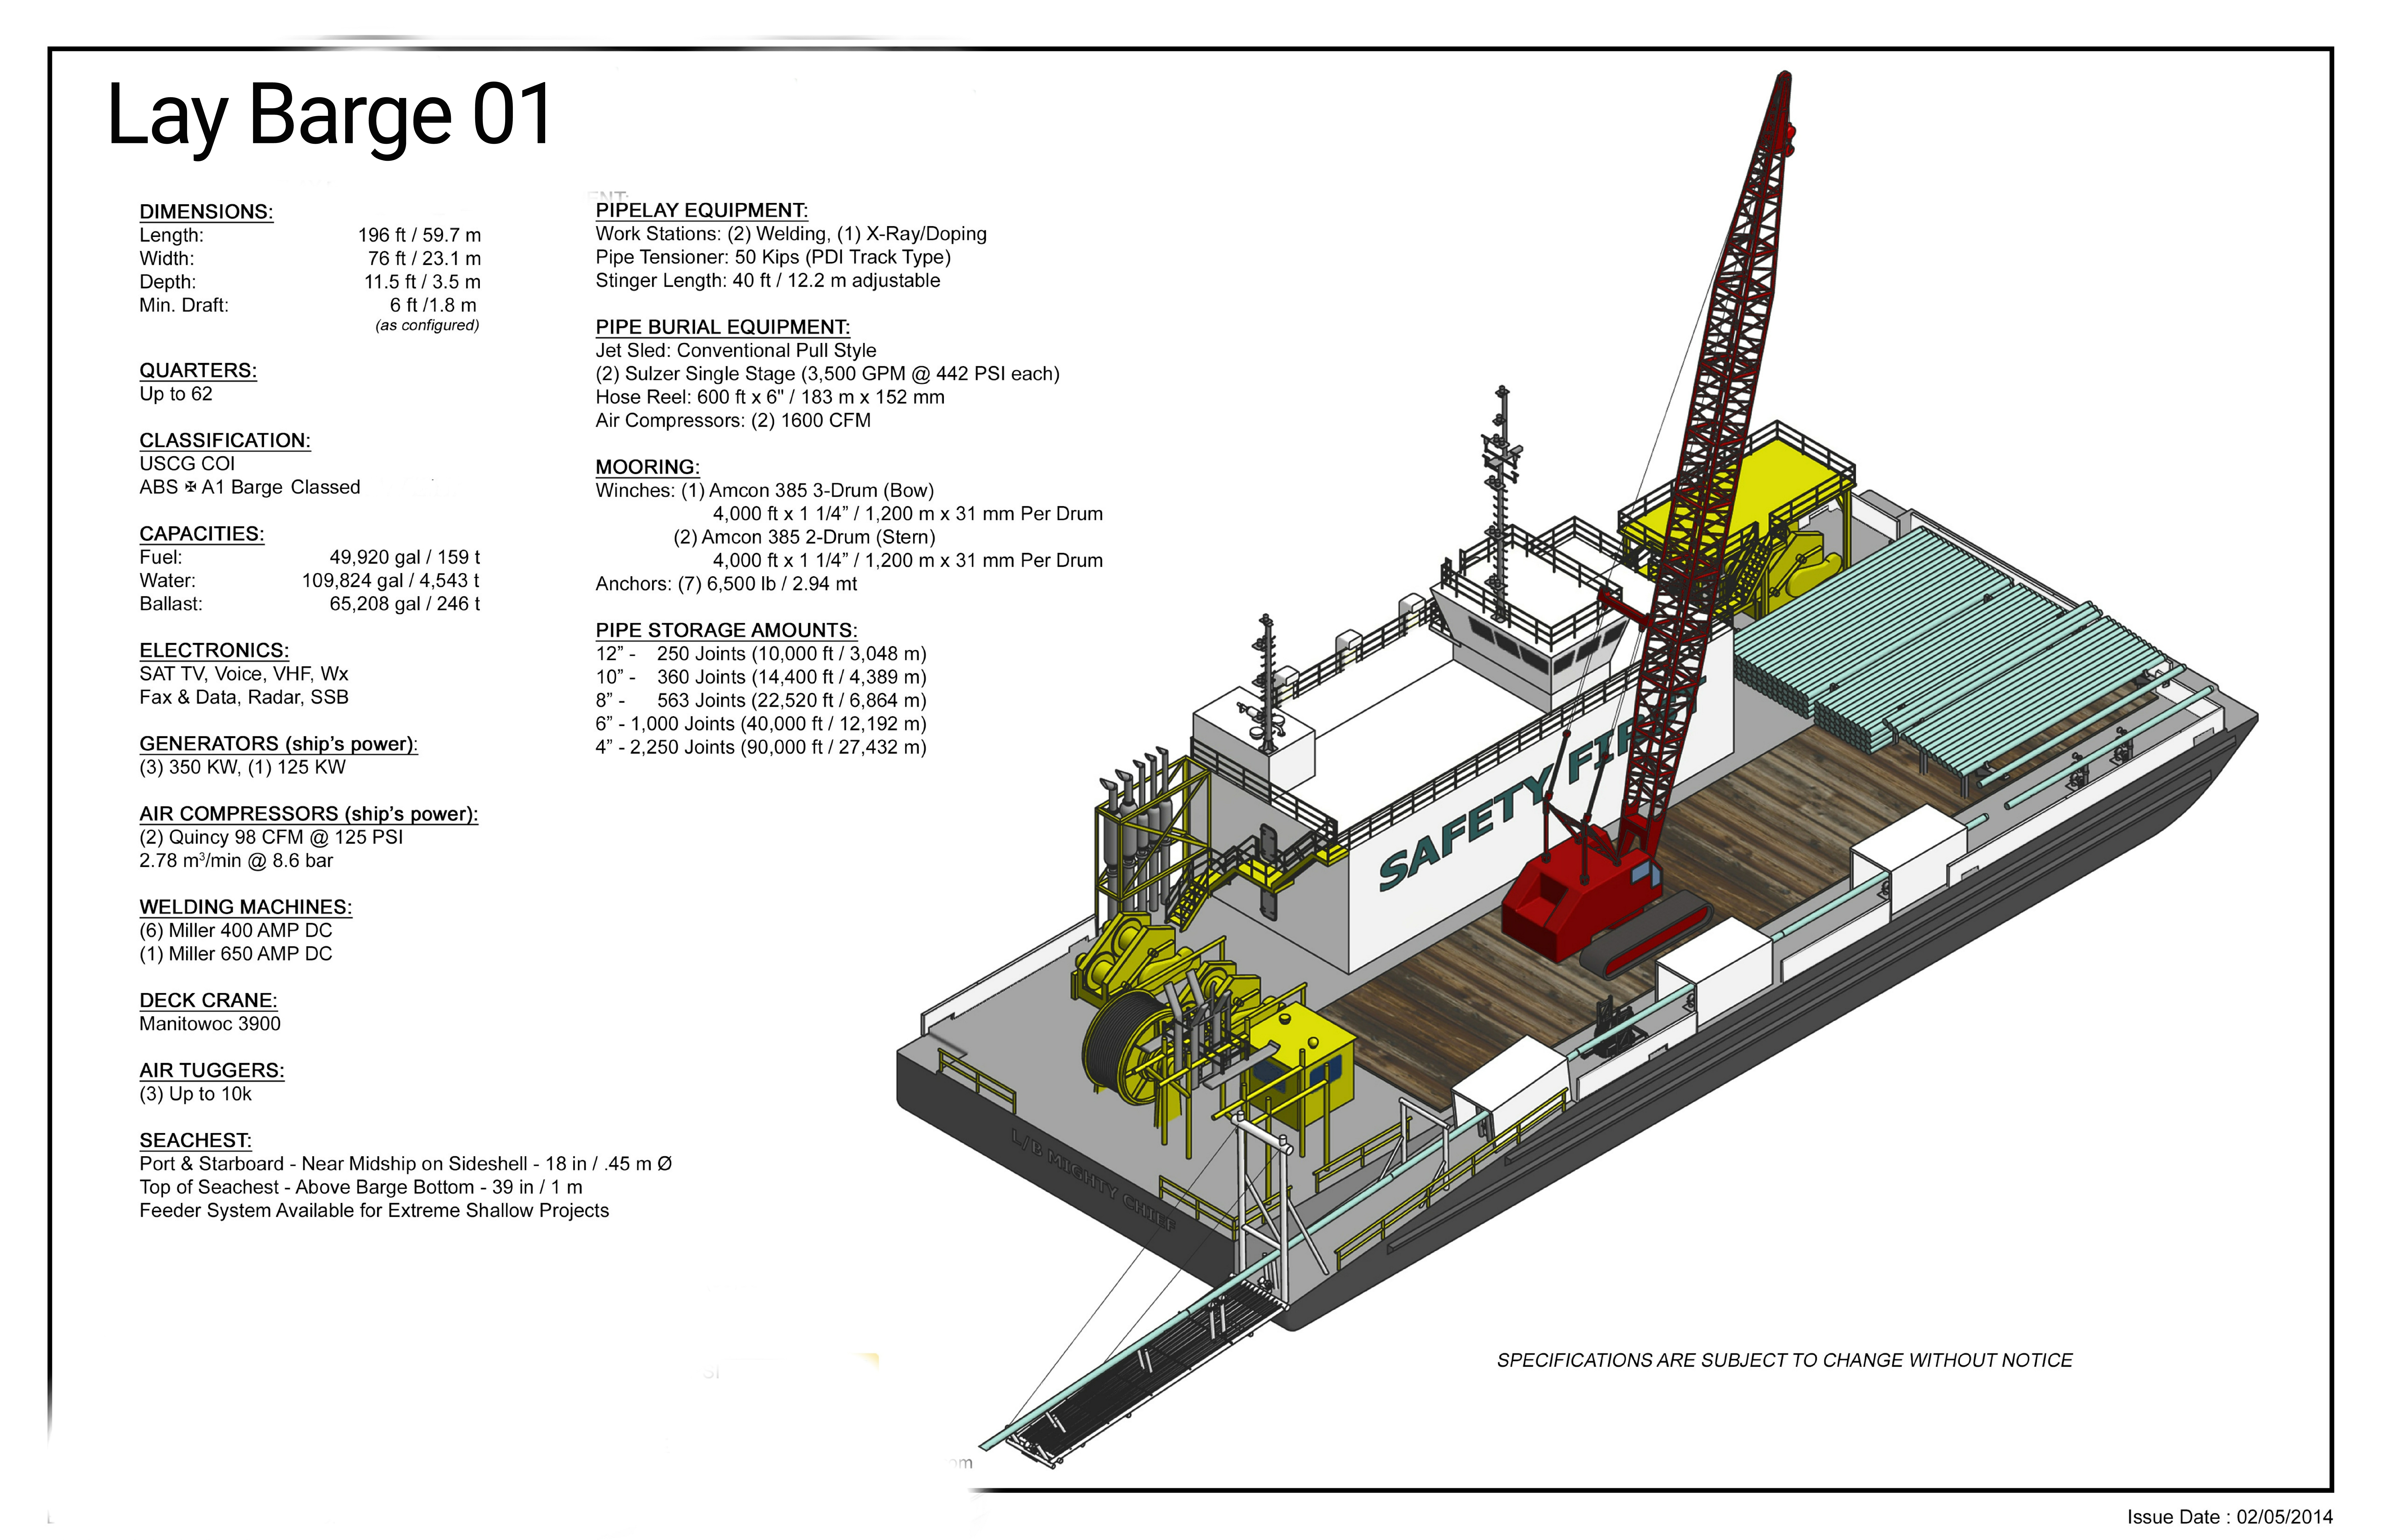 Barge Diagram - in progress the large barge cargo and